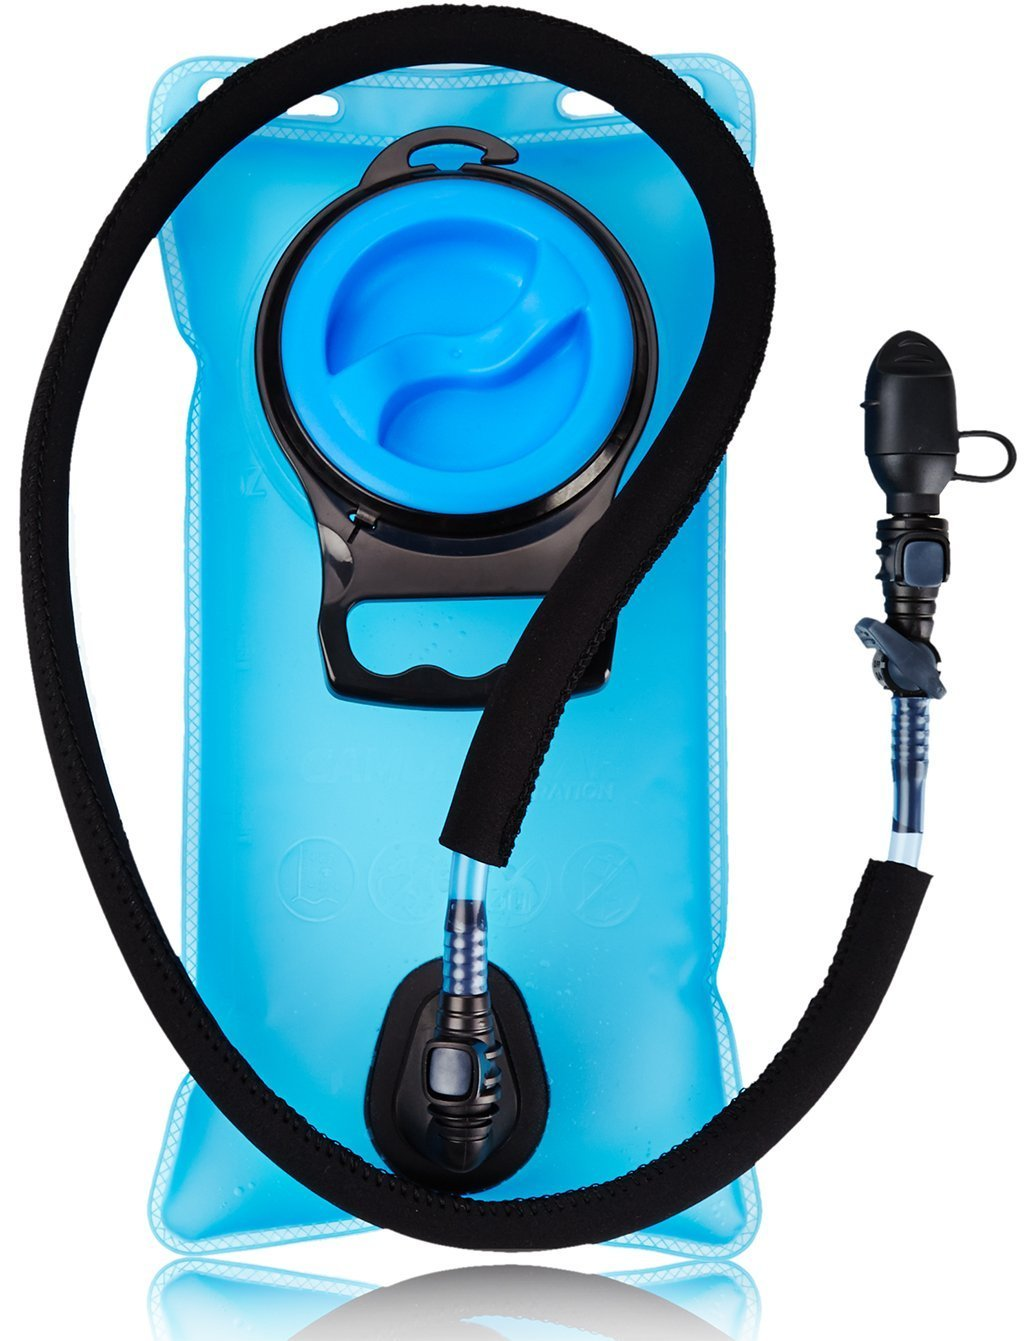 Camden Gear 2L Hydration Bladder, Water Reservoir for Hydration Pack, 2 Liter Backpack with Insulated Mouth Tube Valve Water Bag